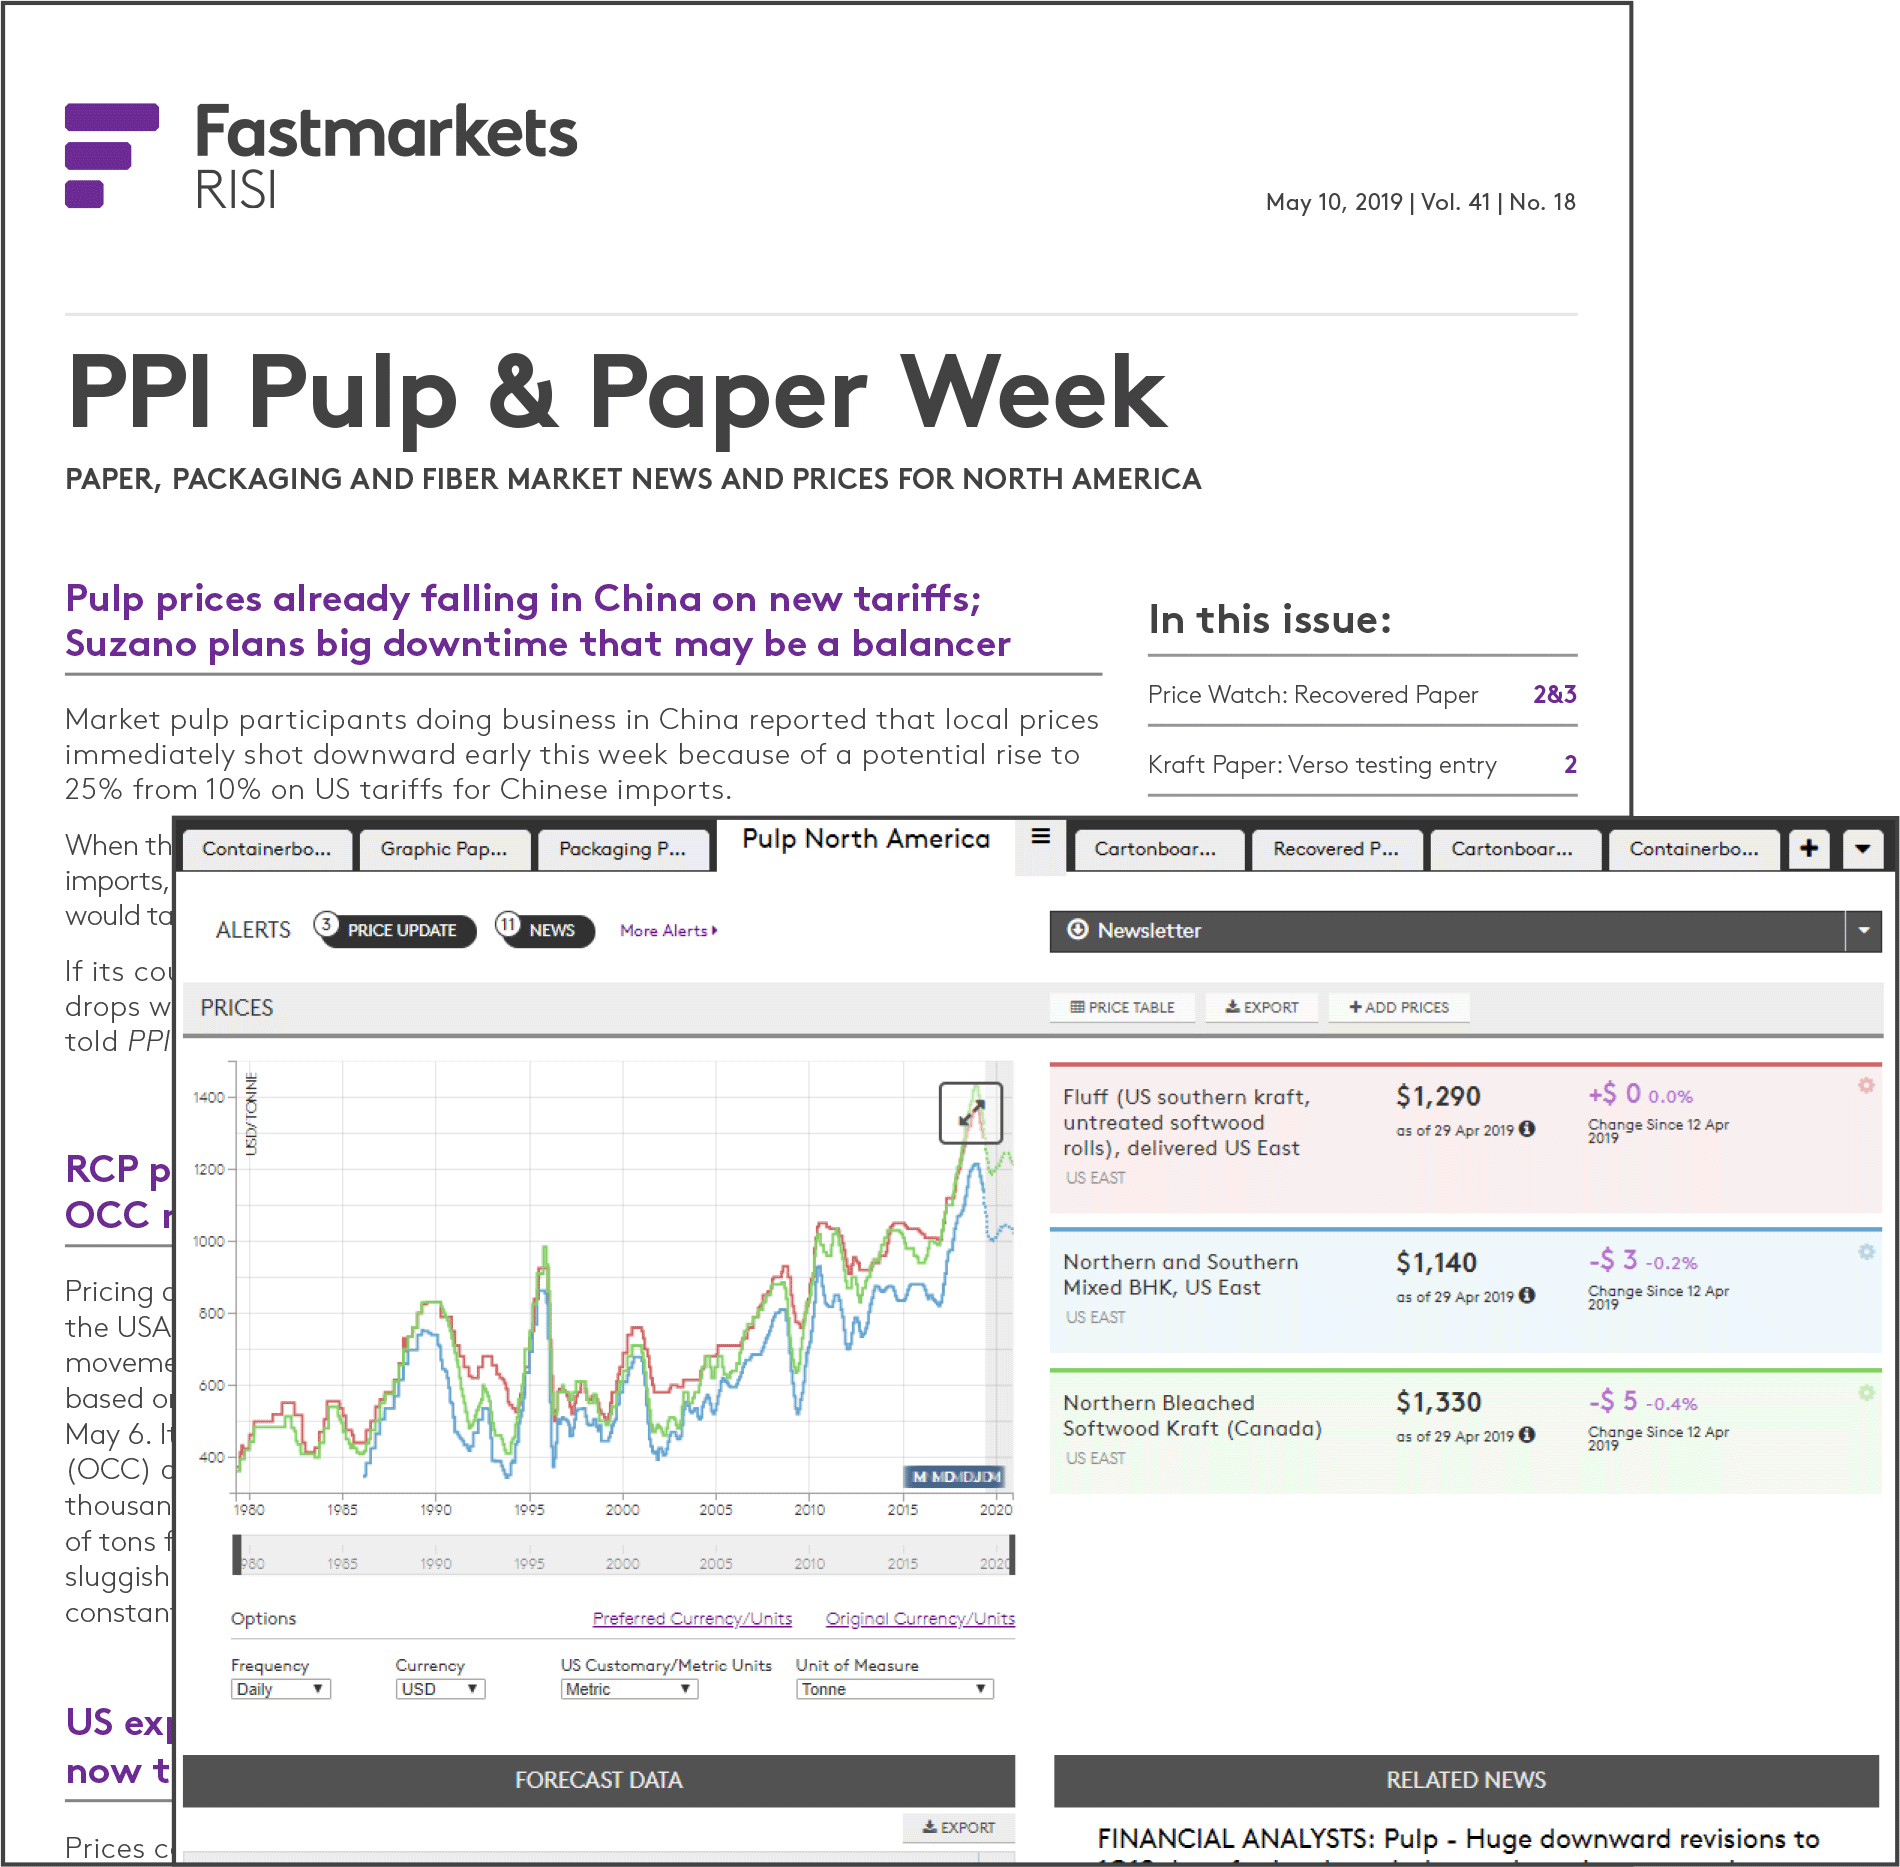 pulp and paper prices The website of pulp and paper technology is a really handsome, easy-to-use platform for our sector we like the miscellaneous possibilities to read up upon new information, may it be products & services, suppliers, events or recent news about markets and trends.